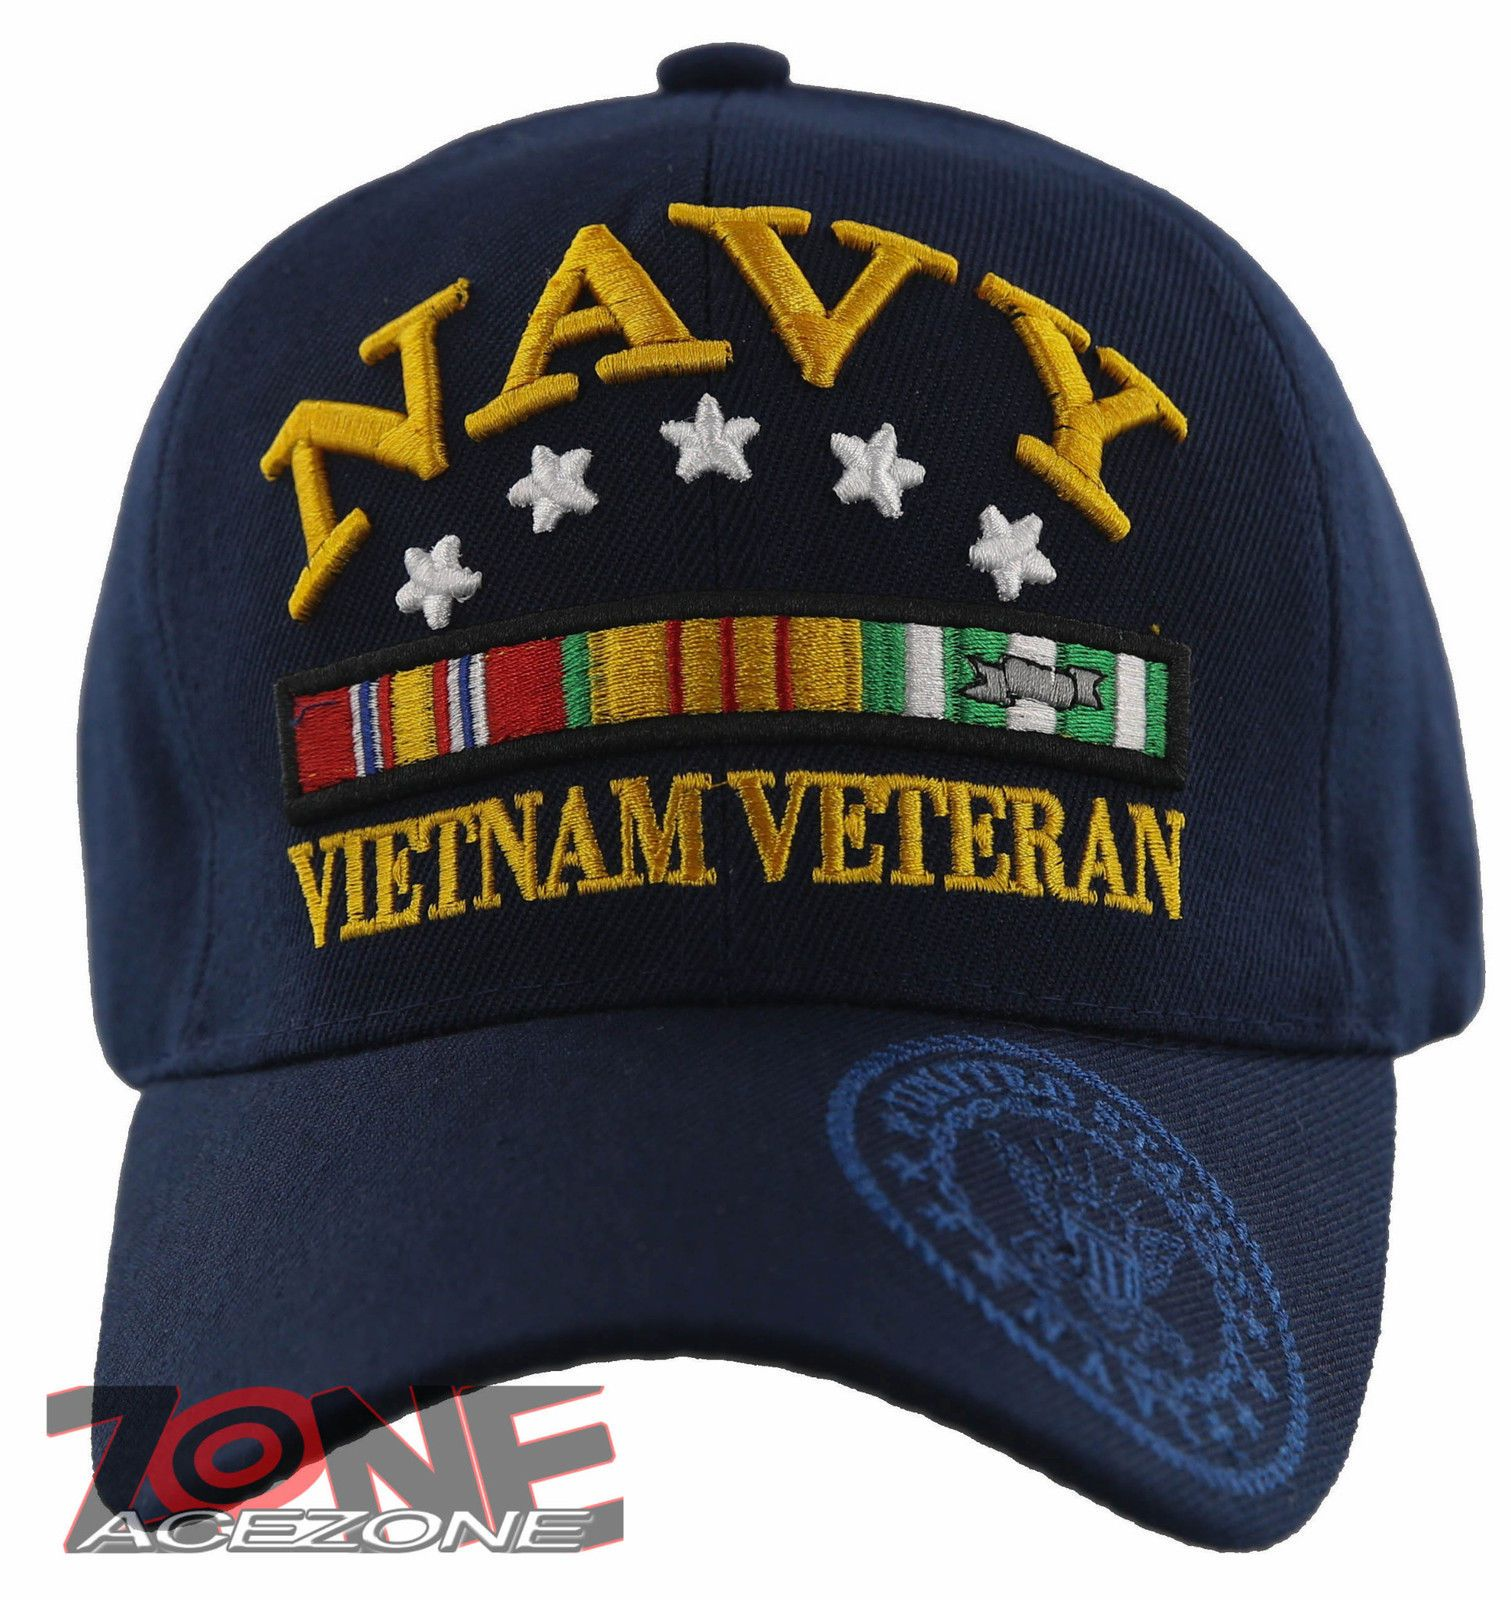 1f5d71db3 Details about NEW! US MARINE VIETNAM VETERAN SHADOW USMC BASEBALL ...